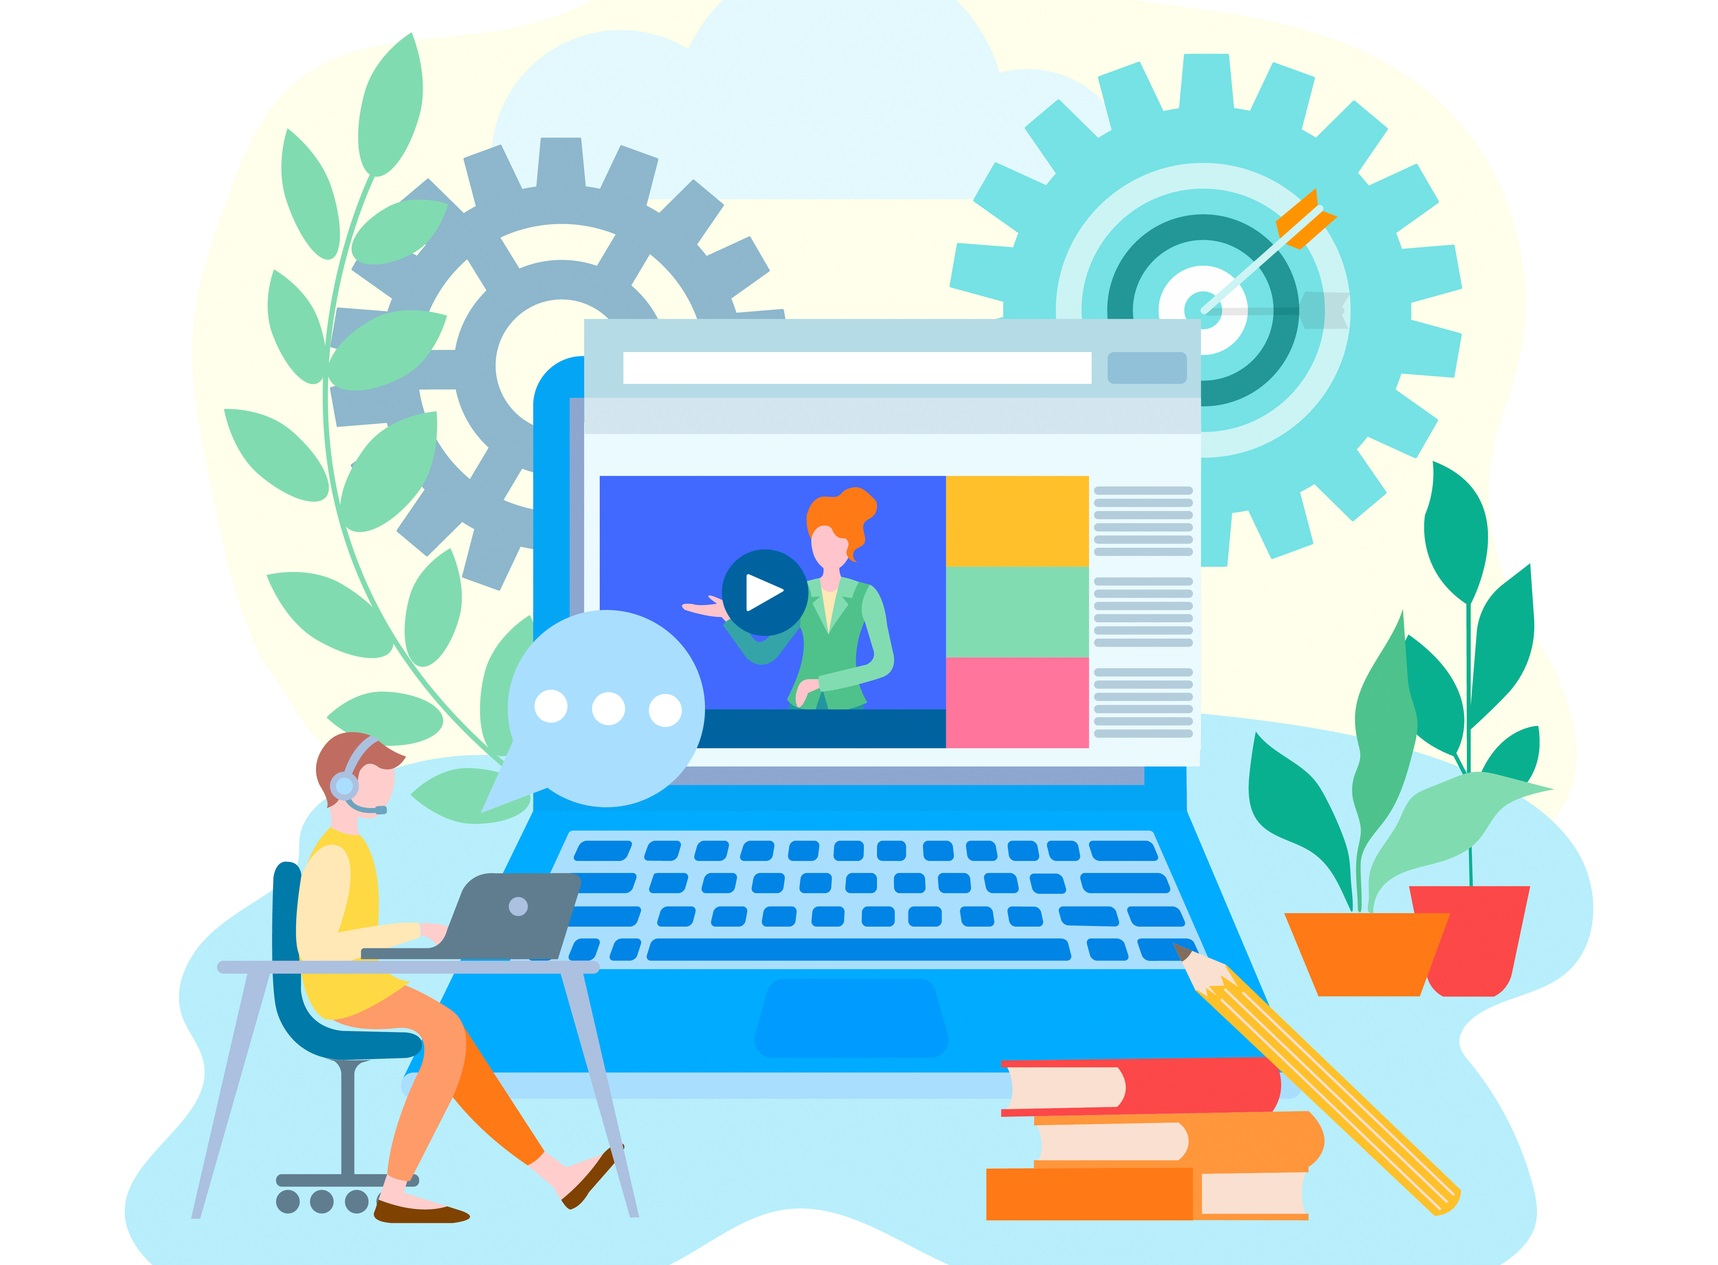 6 Software Development Concepts You Can Learn Through Online